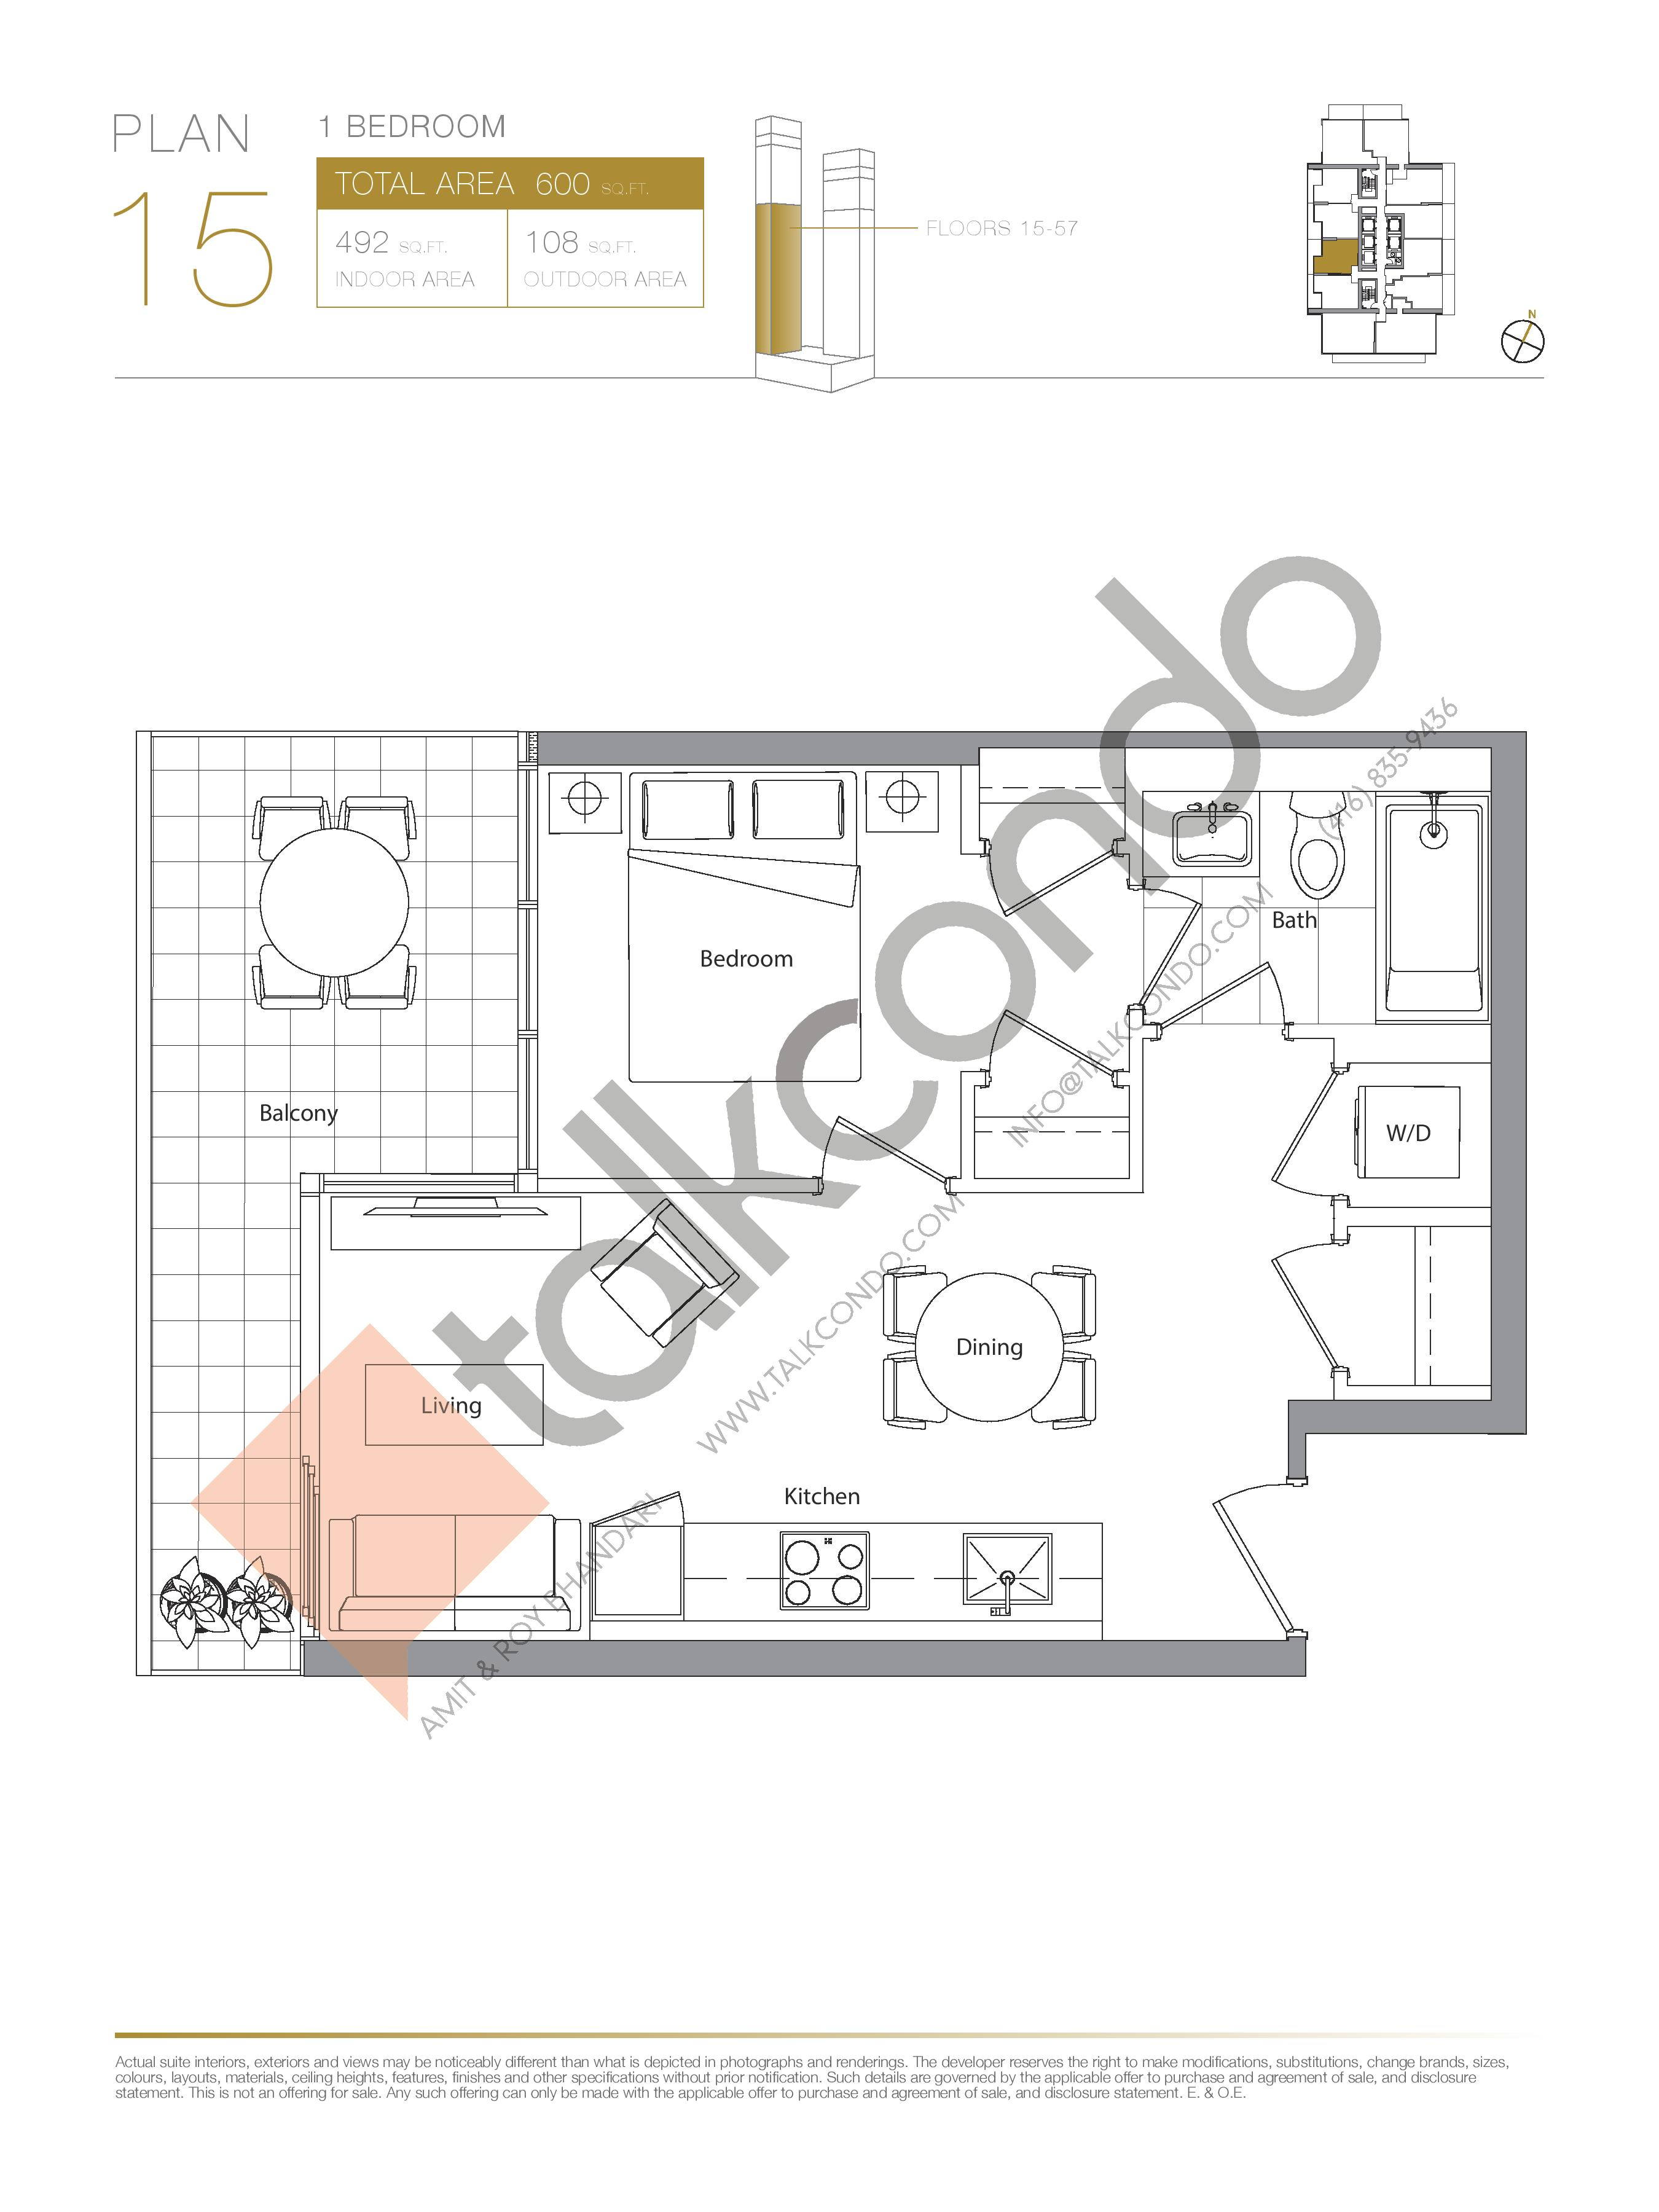 Plan 15 (New Release) Lower Floor Plan at Concord Canada House Condos - 492 sq.ft